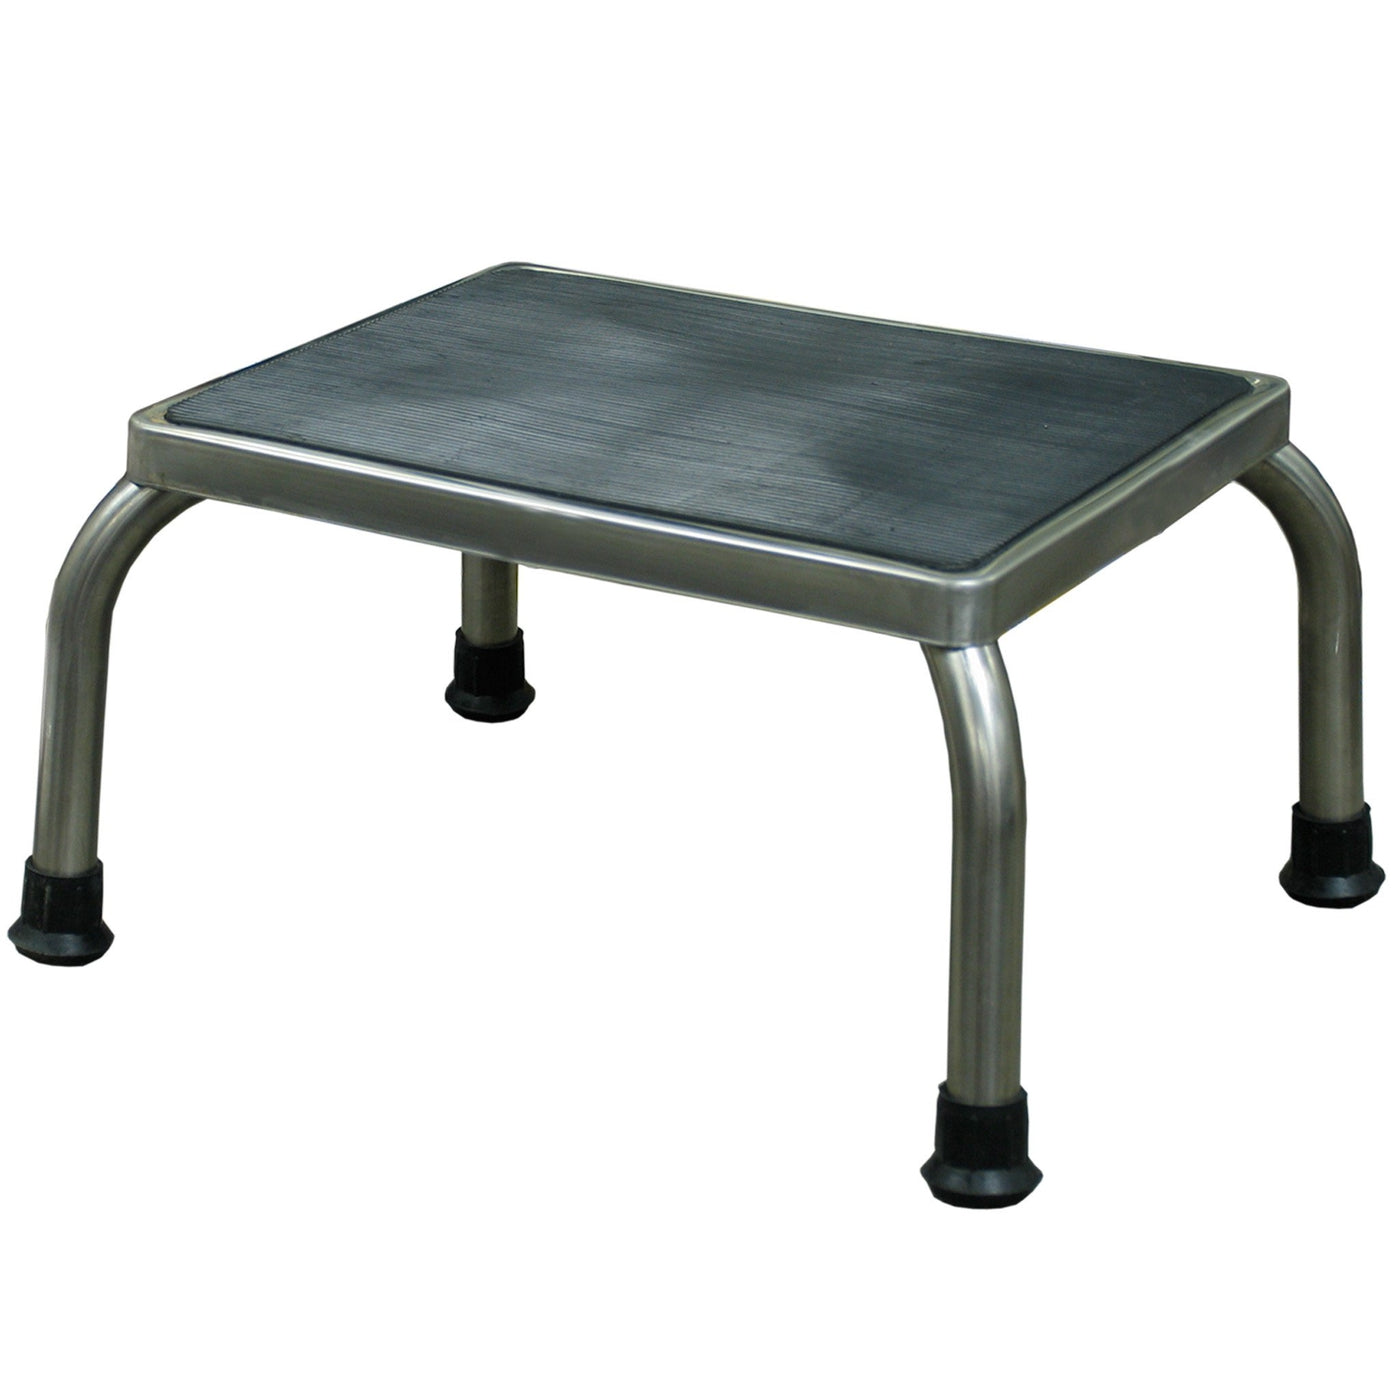 Footstool-Laboratory Accessory-Mortech Manufacturing Company Inc. Quality Stainless Steel Autopsy, Morgue, Funeral Home, Necropsy, Veterinary / Anatomy, Dissection Equipment and Accessories